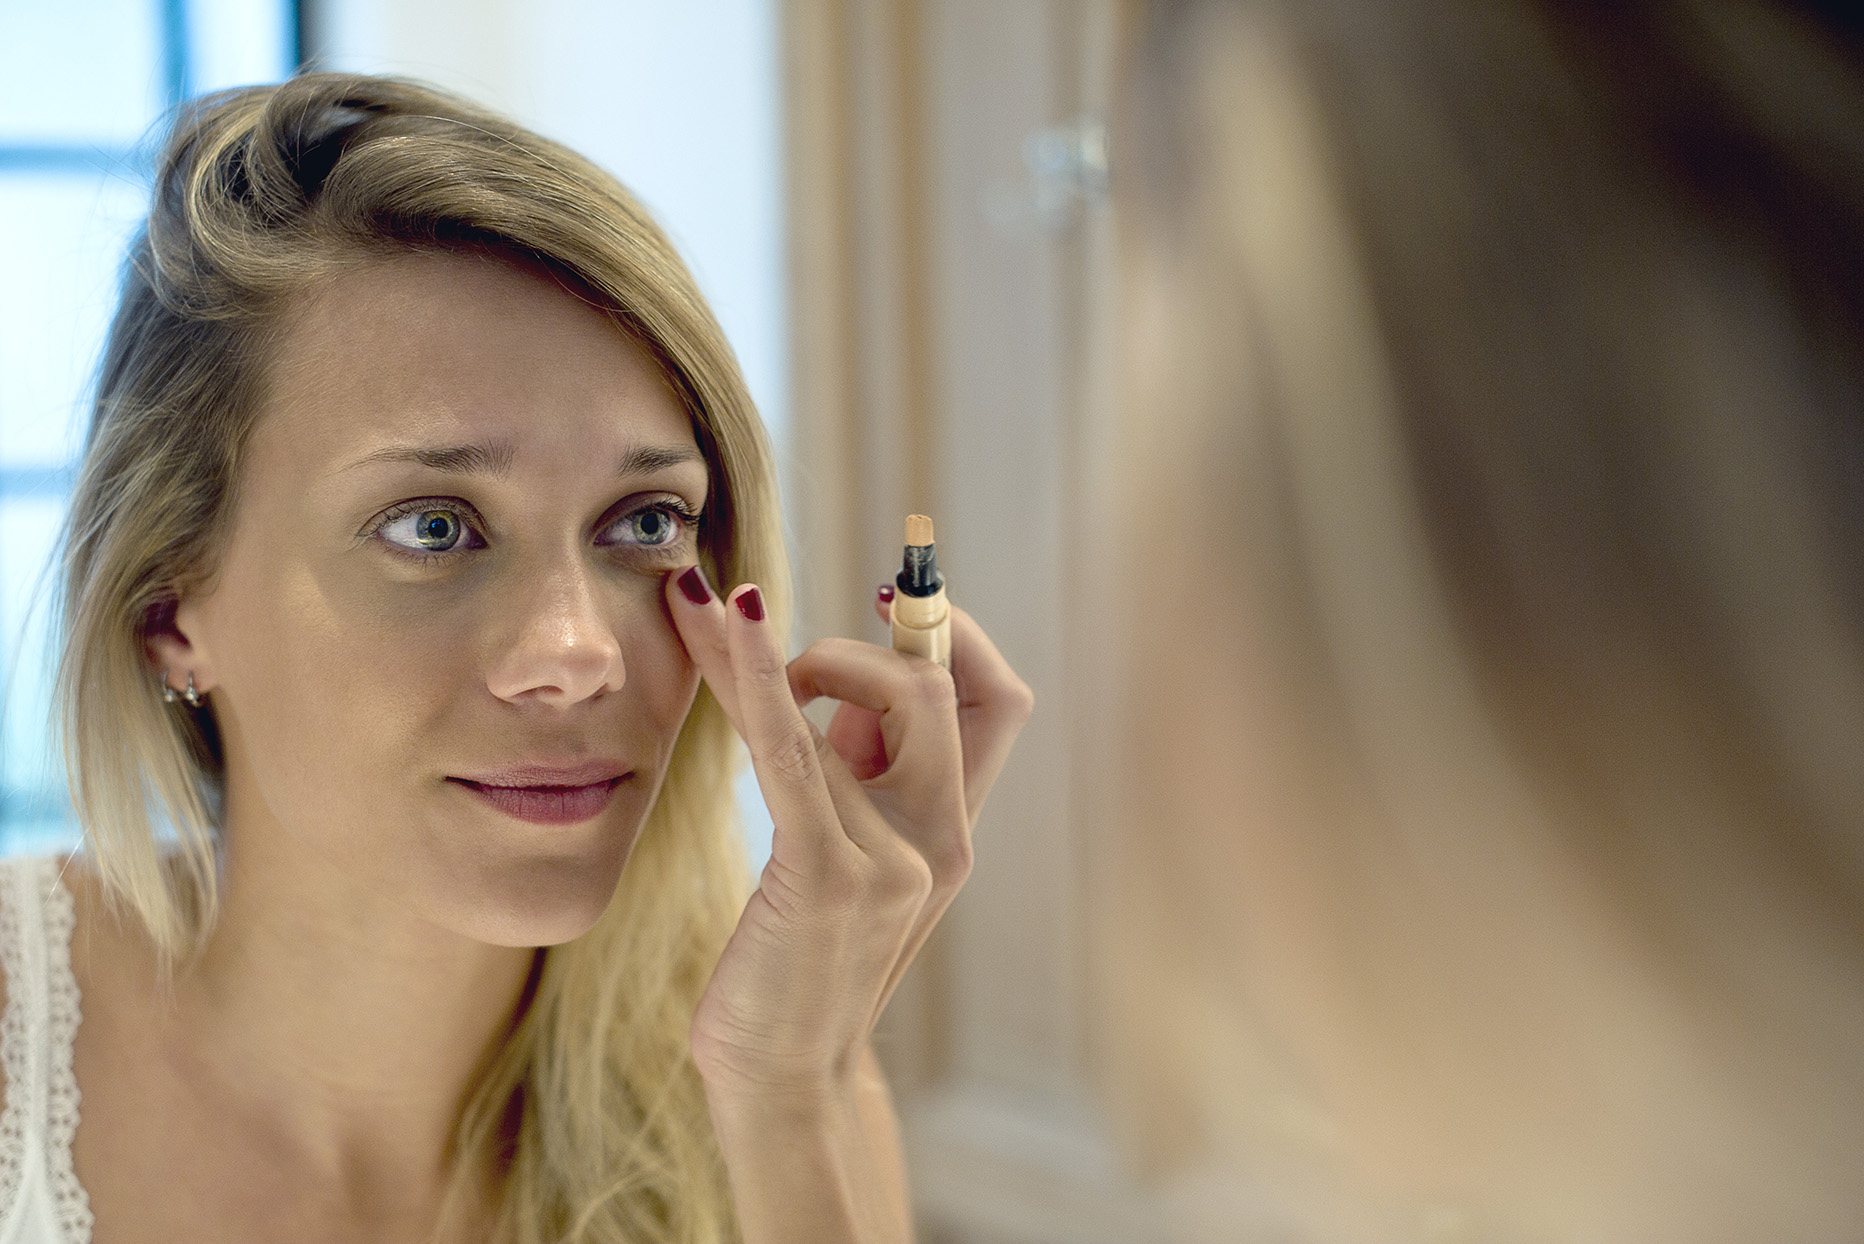 Blond woman applying concealer under eyes while looking in a mirror